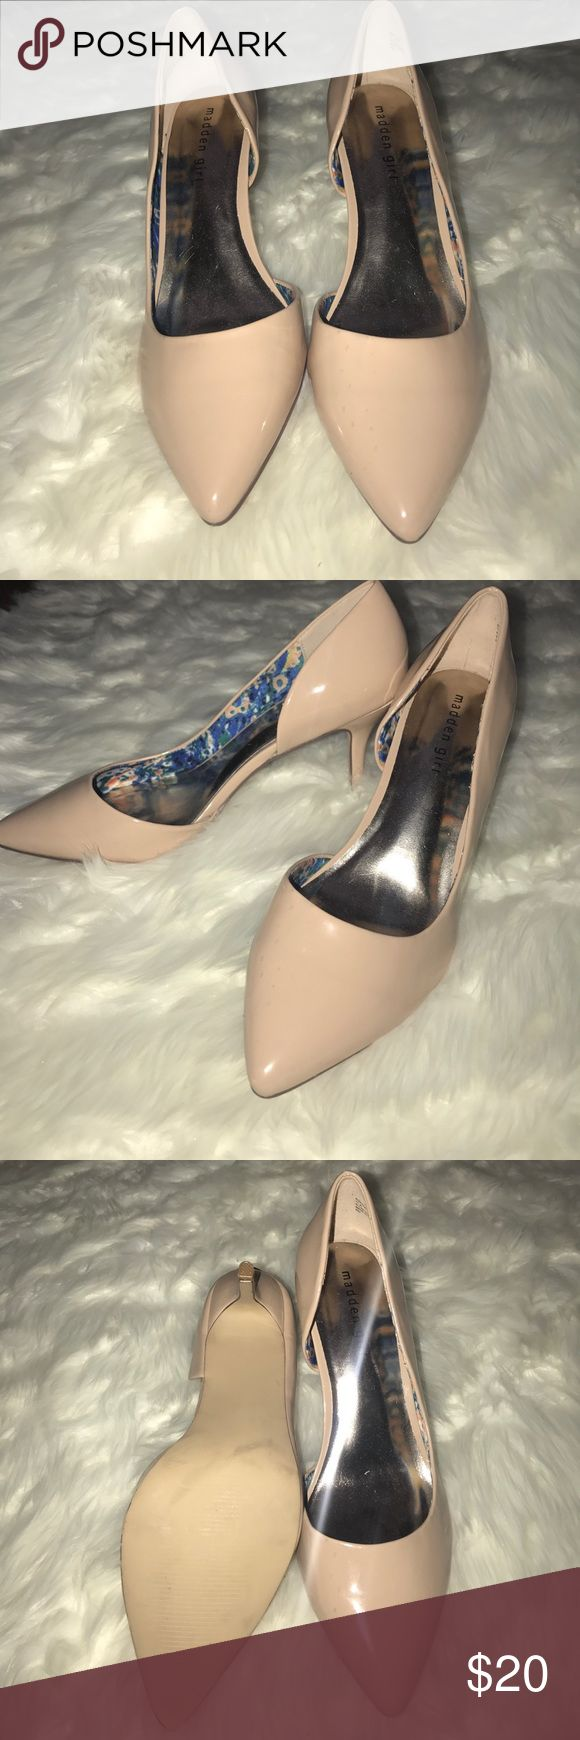 NWOT Madden girl nude pump Brand new never worn out of the house! Super cute and classy design! Madden Girl Shoes Heels